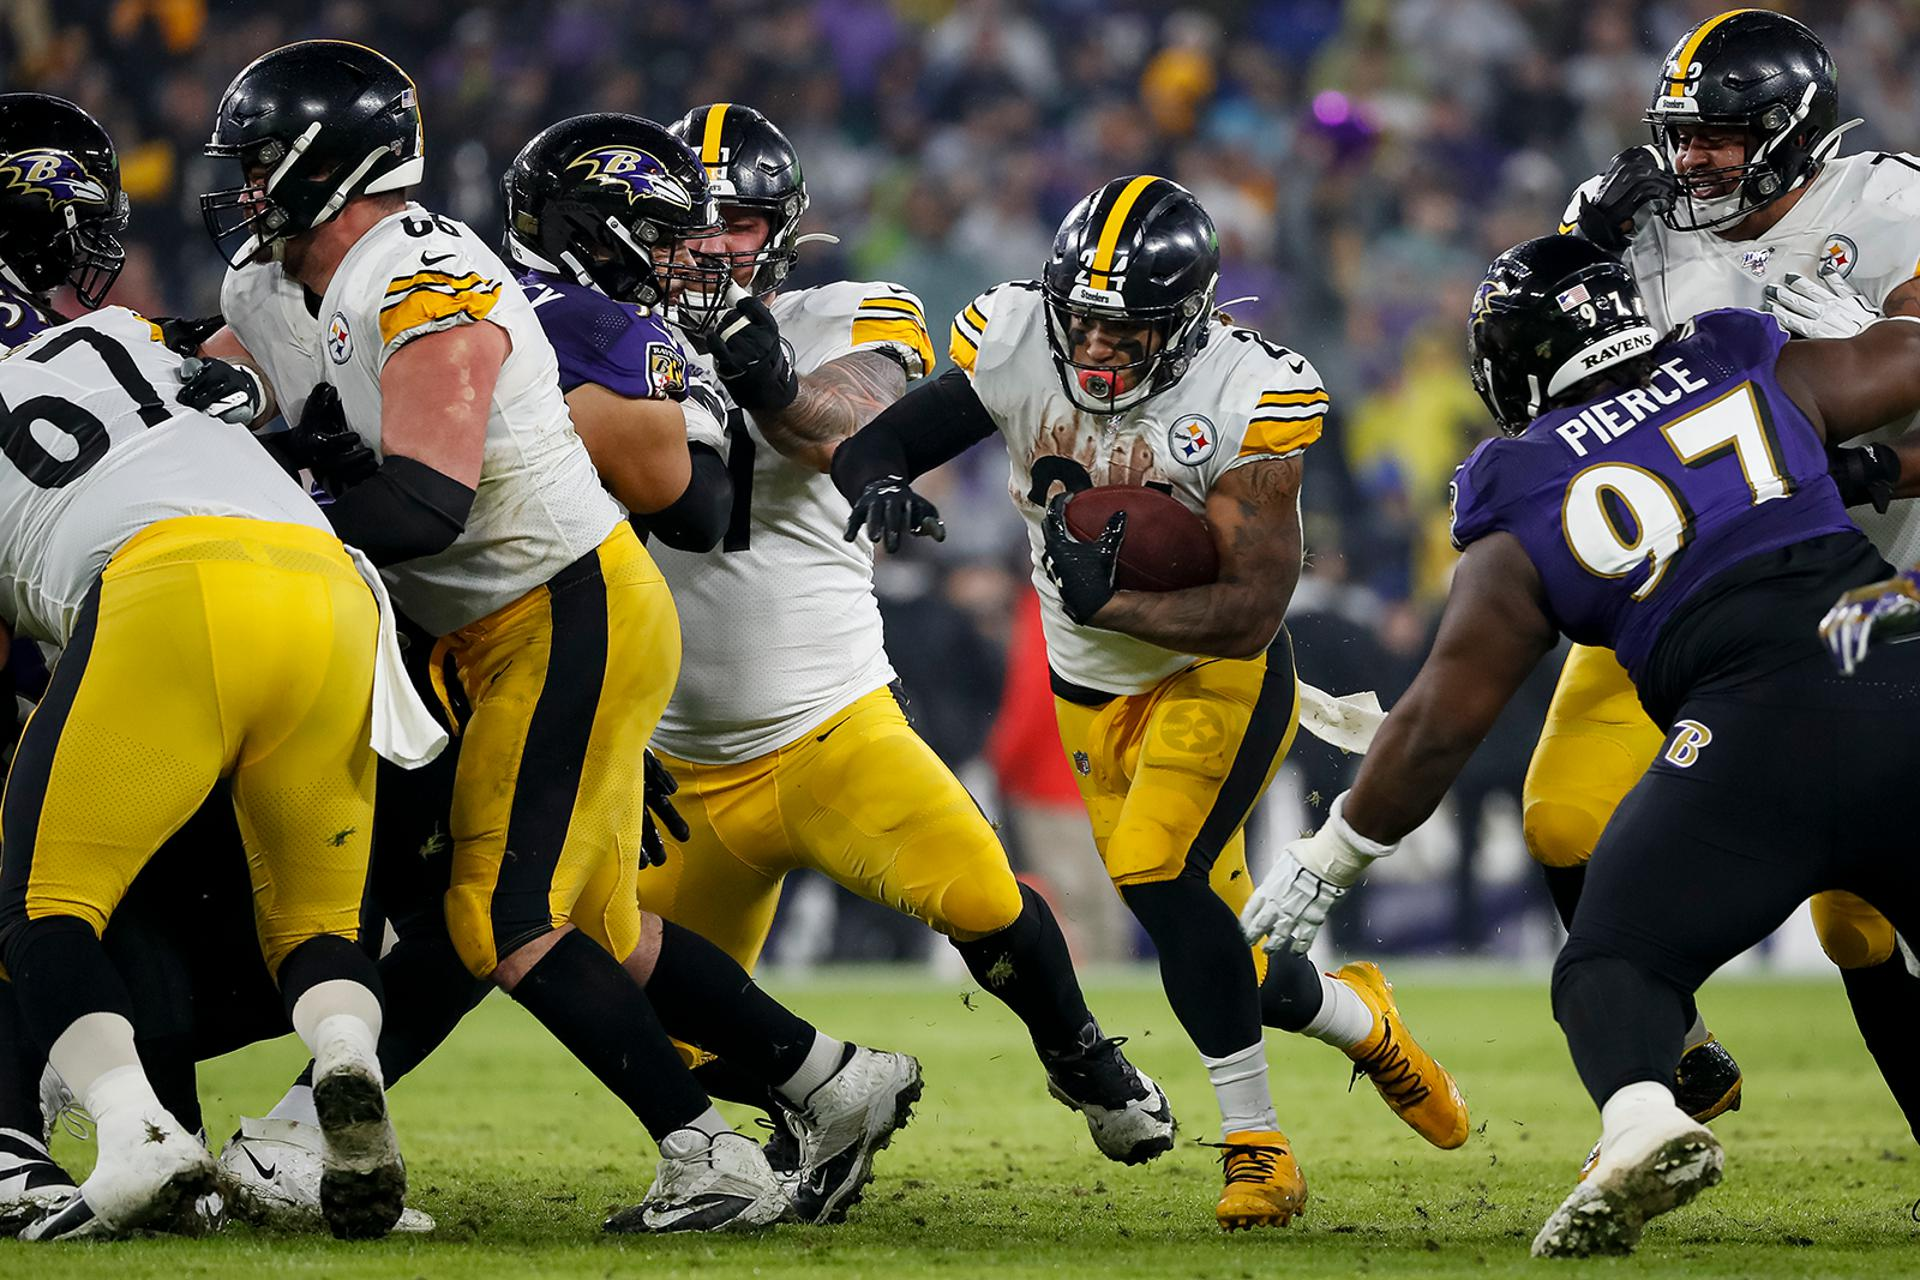 Pitts-Steelers-by-Scott-Taetsch-Getty-Images